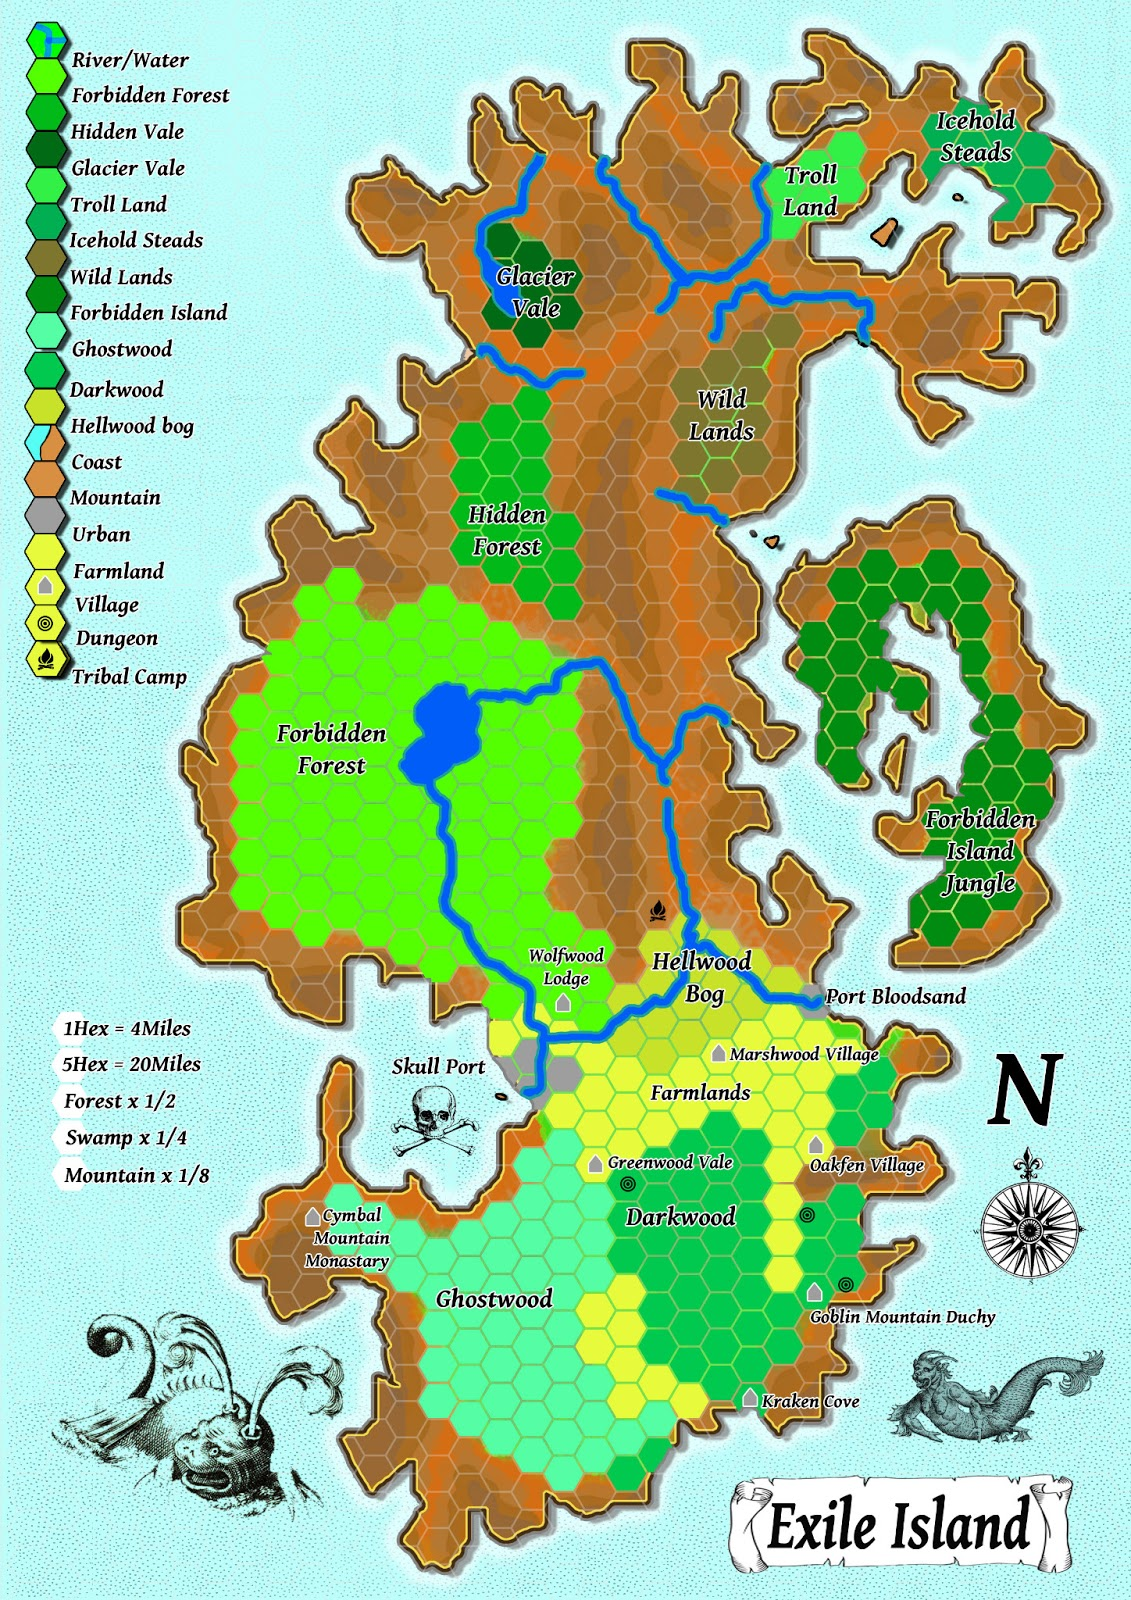 the pcs could be on a mission for the ruler of one of the coastal cities exploration game the pcs could be looking for god learner ruins in order to